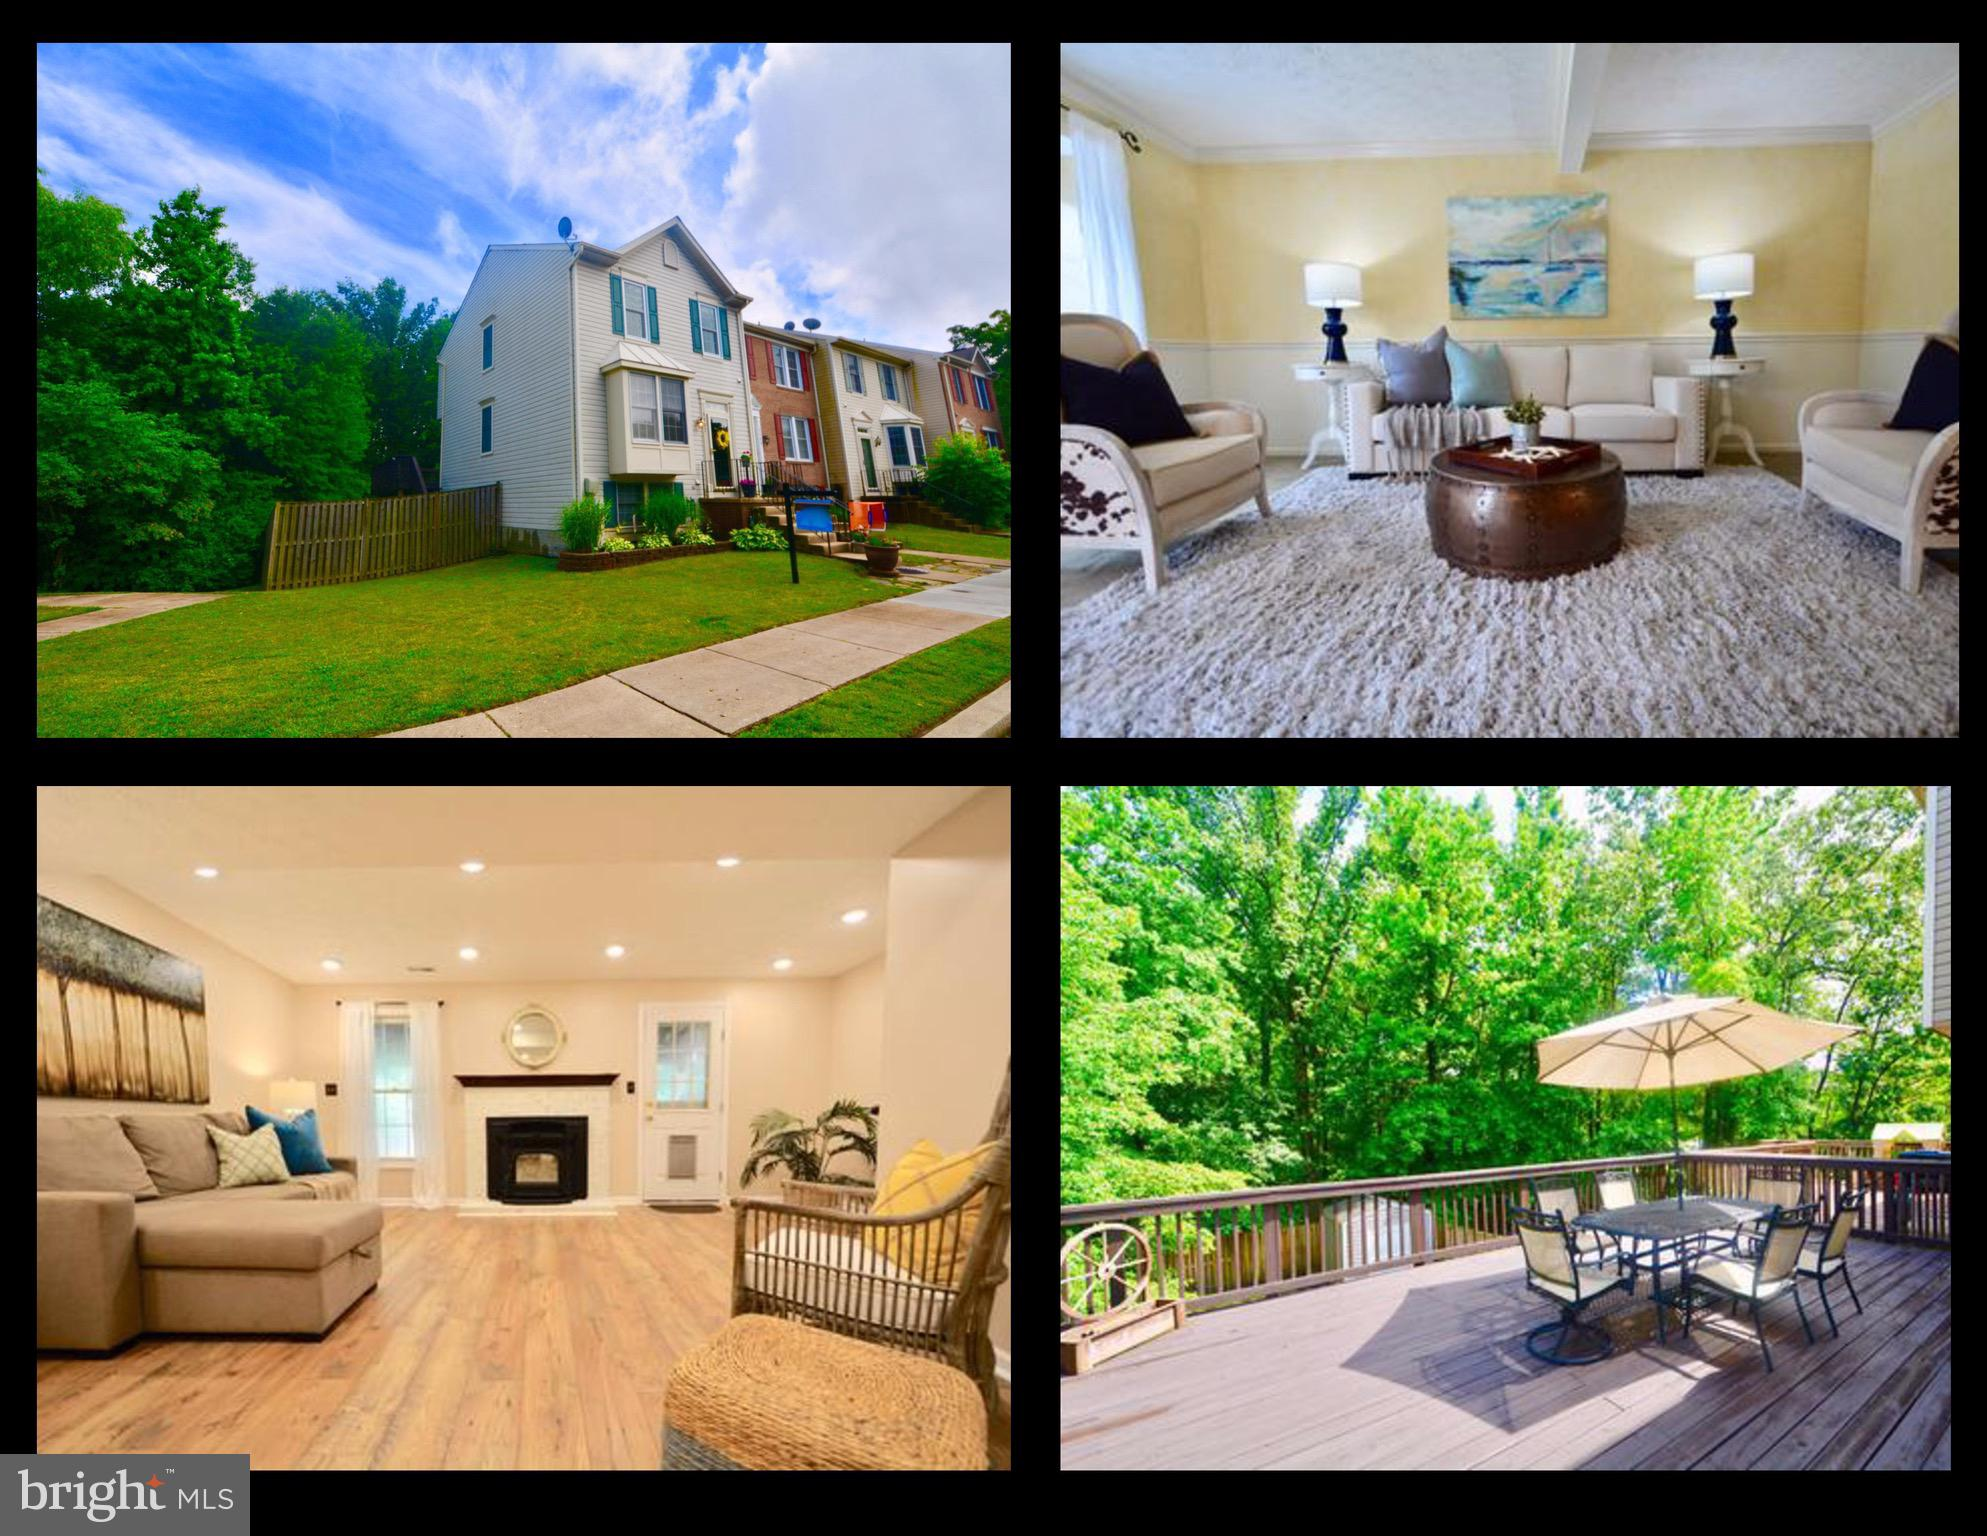 1107 DOUBLE CHESTNUT COURT, CHESTNUT HILL COVE, MD 21226